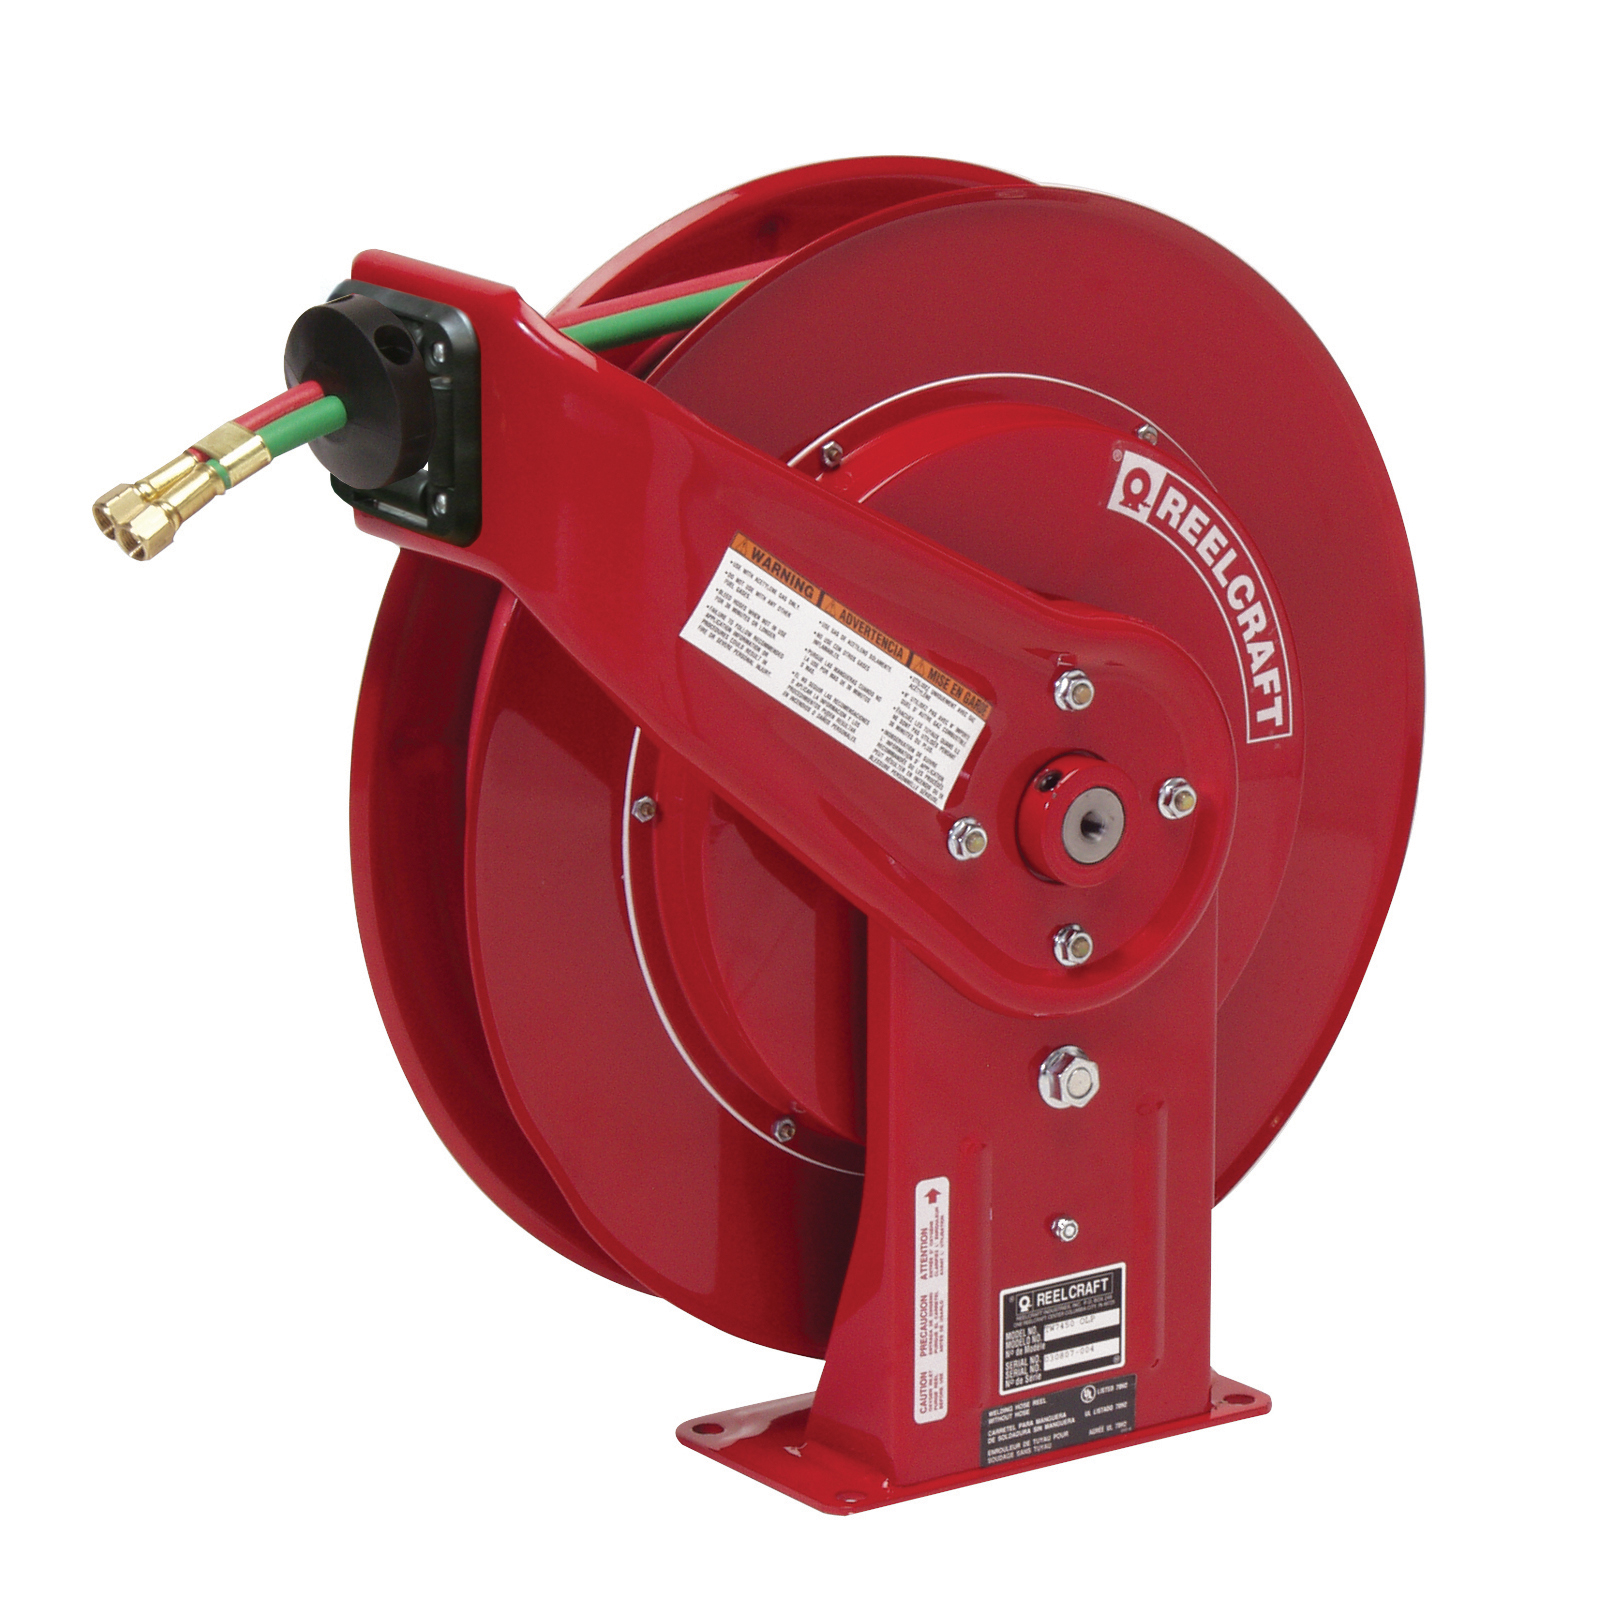 Reelcraft® TW7460 OLPT Dual Swivel Heavy Duty Spring Drive Hose Reel, 9/16-18 Female Hose Outlet, 1/4 in ID x 60 ft L Hose, 200 psi Pressure, 150 deg F